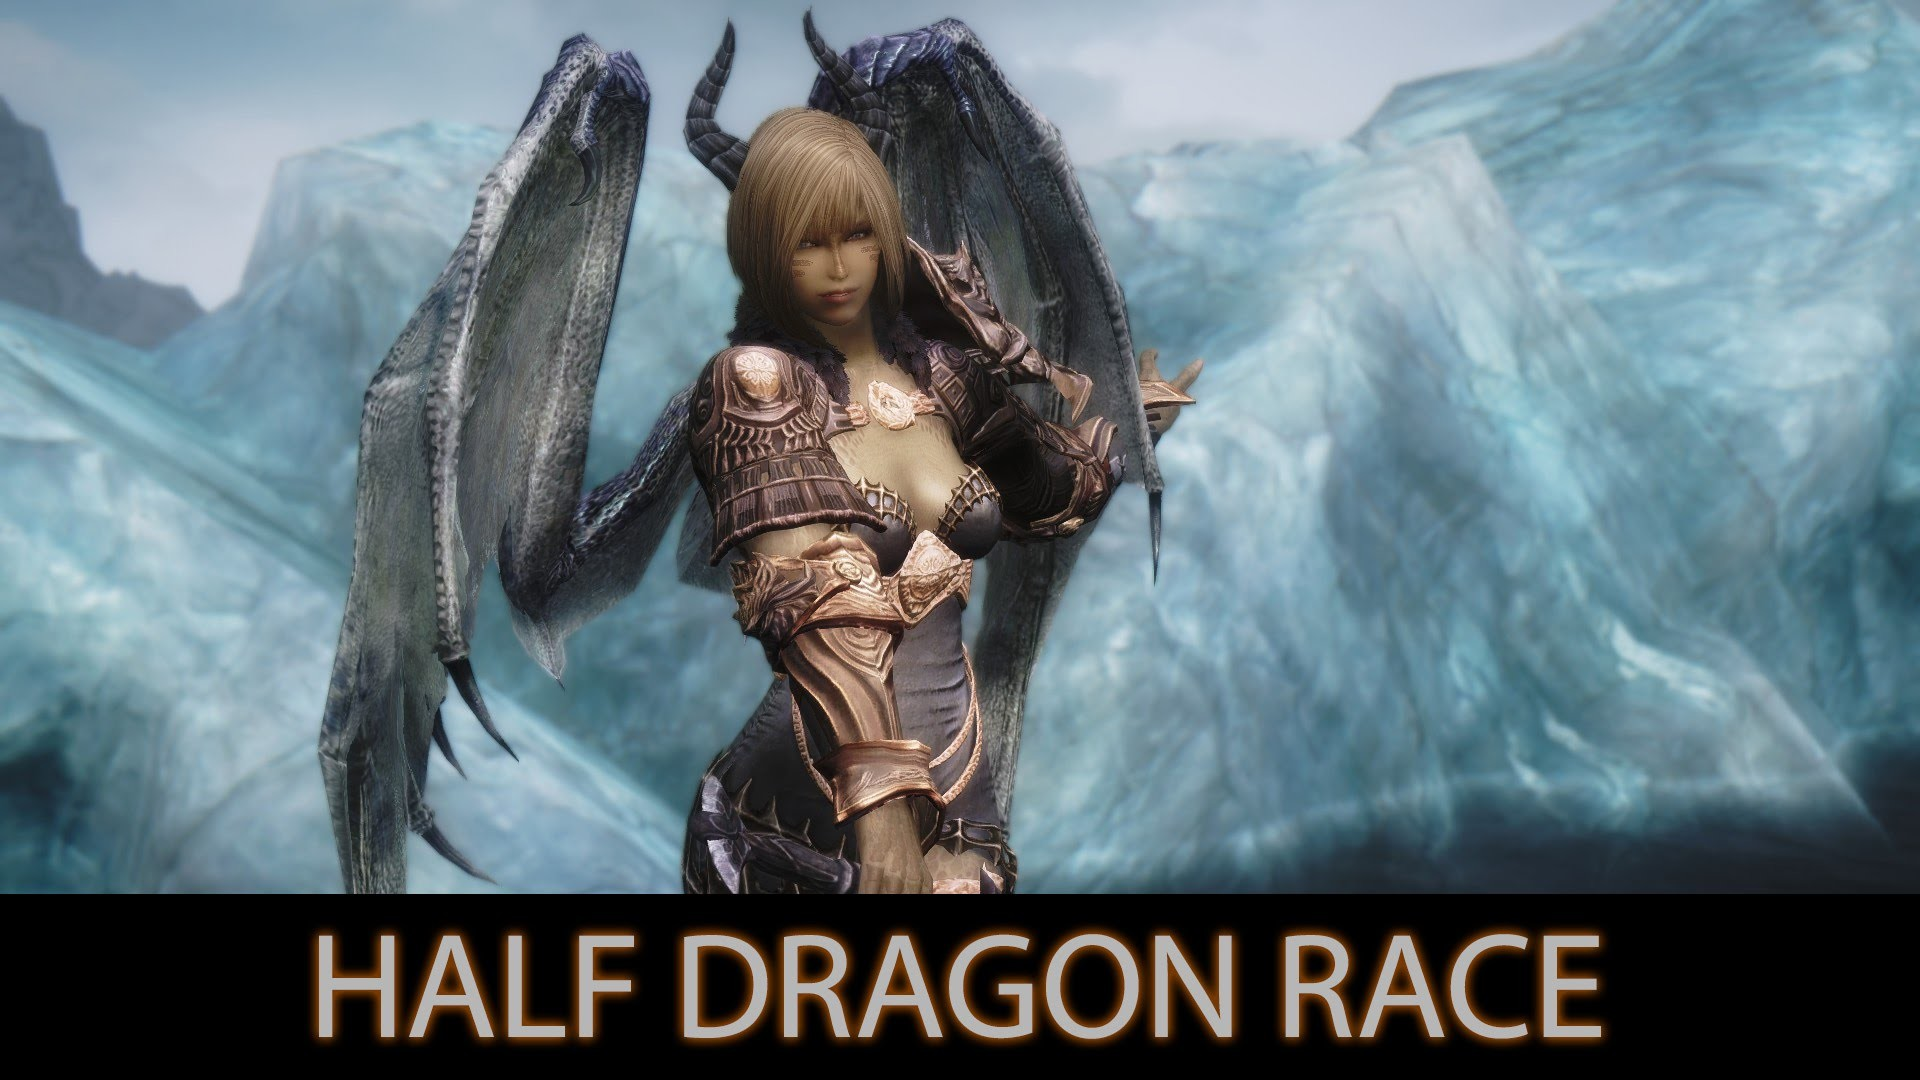 1920x1080 SEXY AND STRONG - Skyrim Mods - Half Dragon Race. [60FPS|1080p] - YouTube